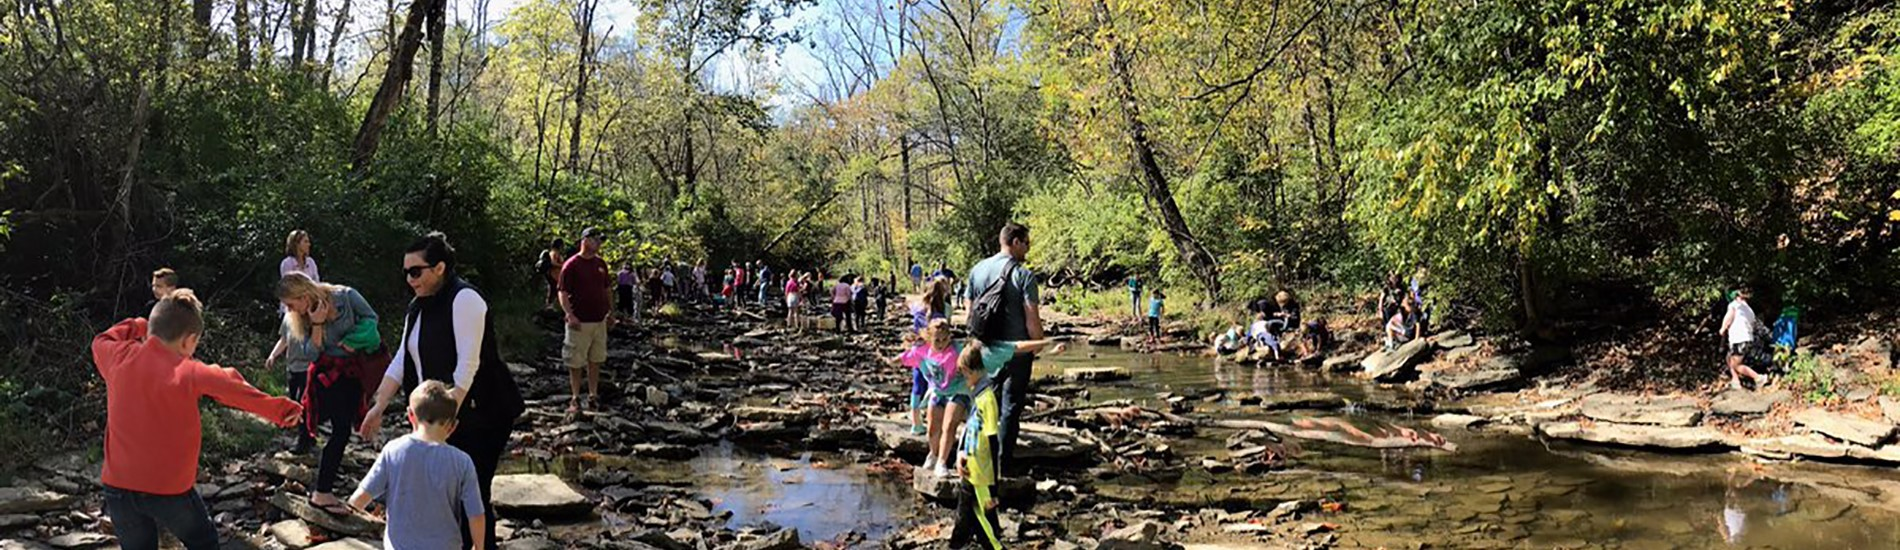 Morgan Students on a mature hike.